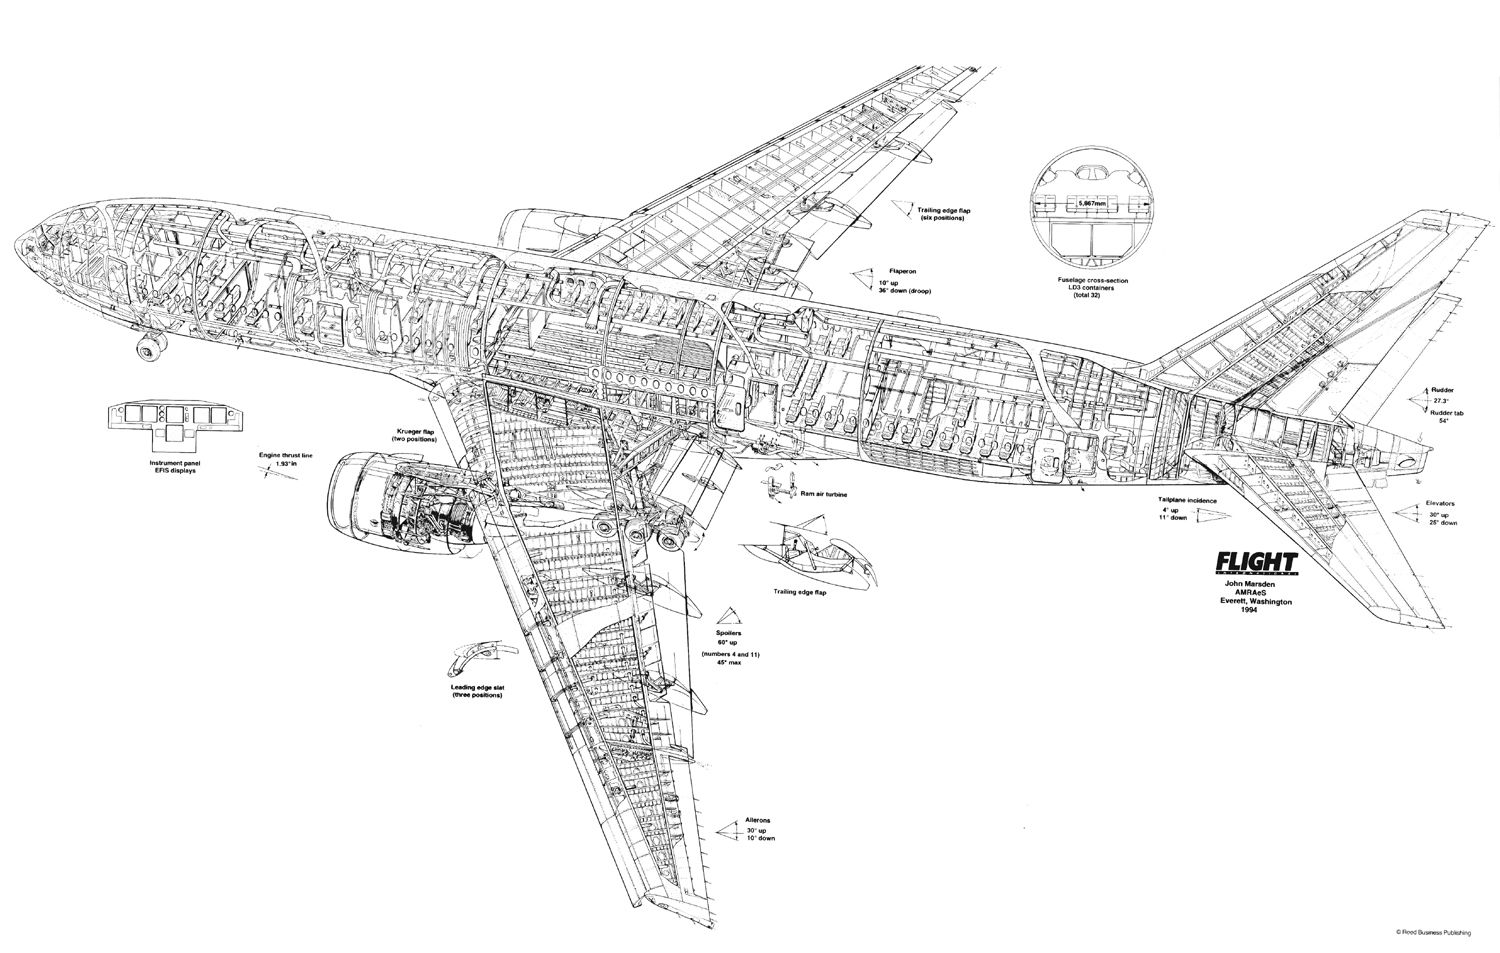 boeing 777 200 cutaway drawing airplane cross sections pinterest boeing 777 cutaway and. Black Bedroom Furniture Sets. Home Design Ideas